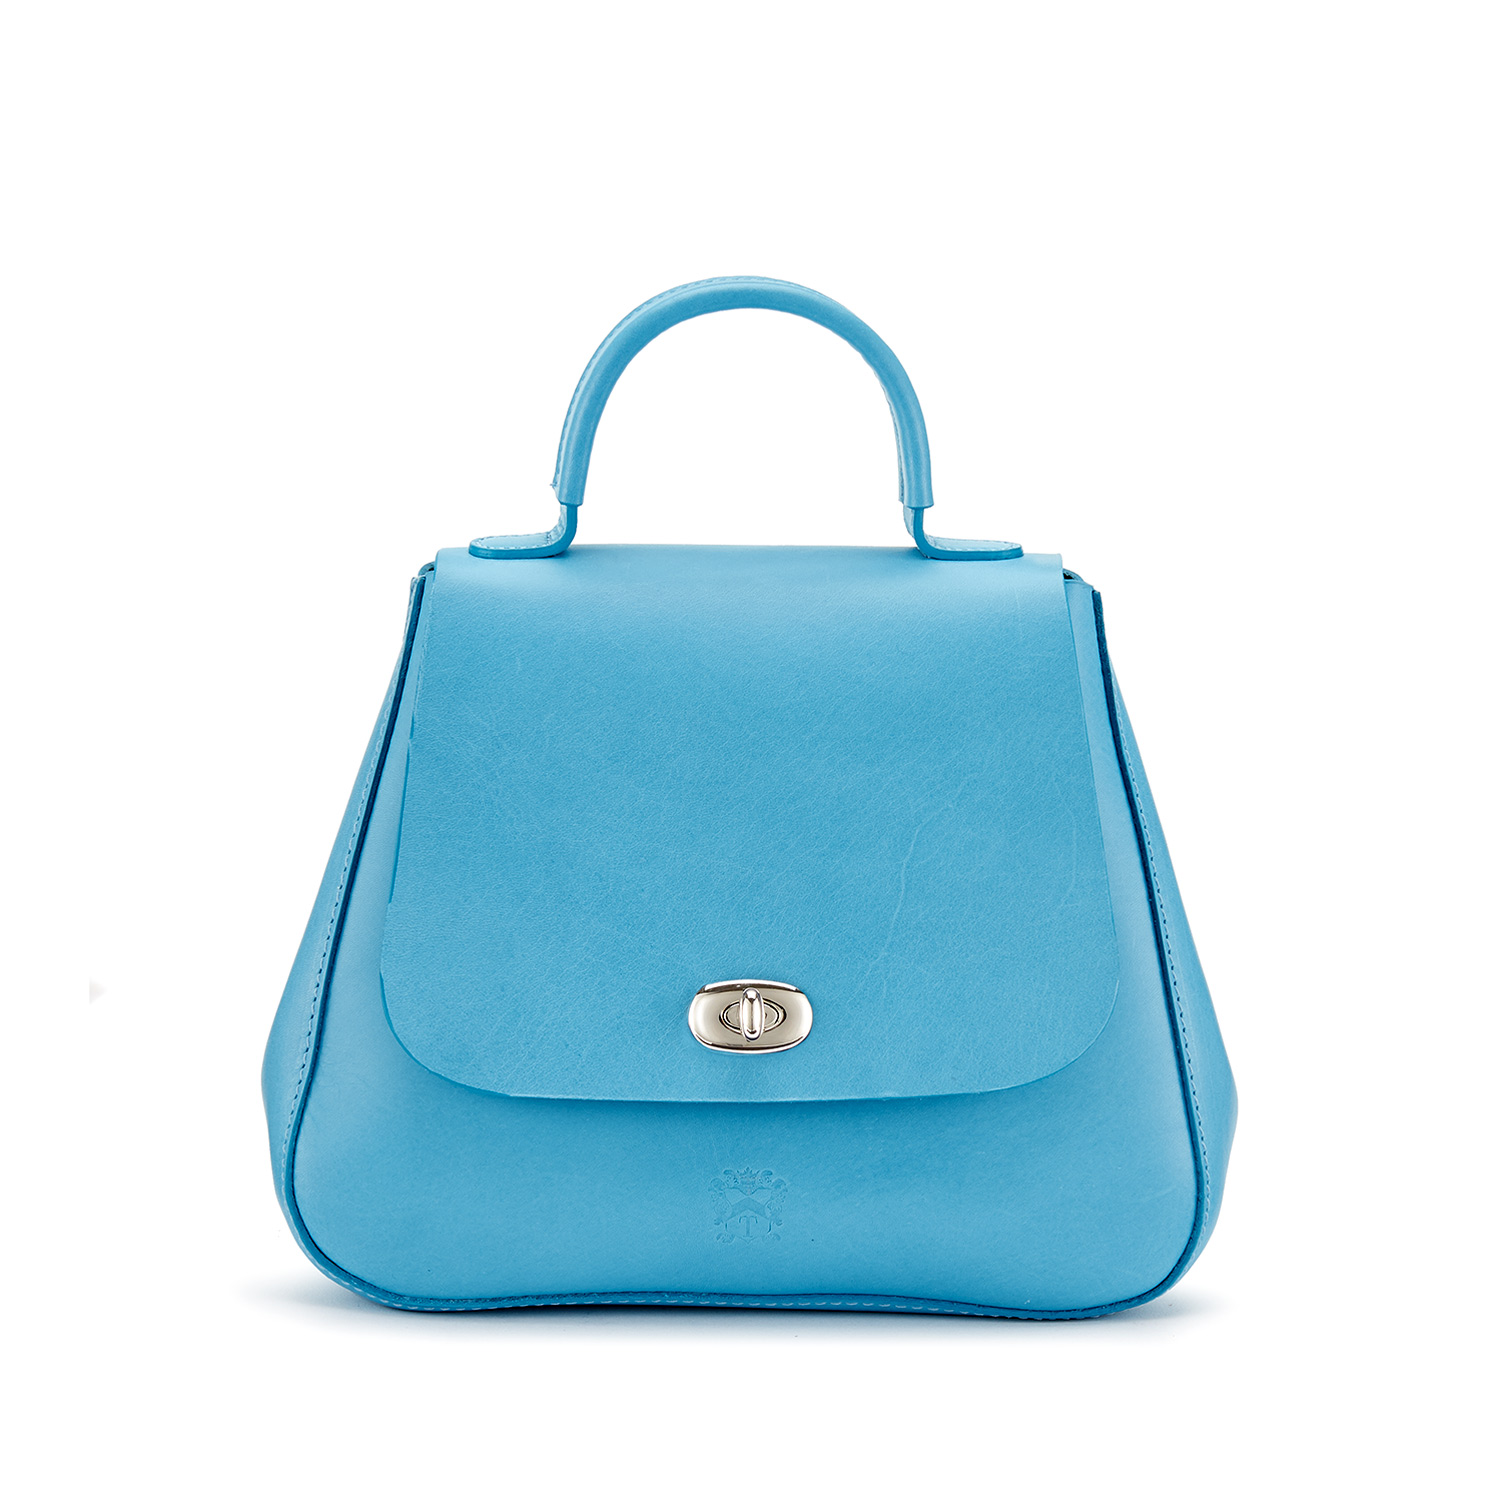 Tusting Holly Leather Top-Handled Handbag in Laguna Blue